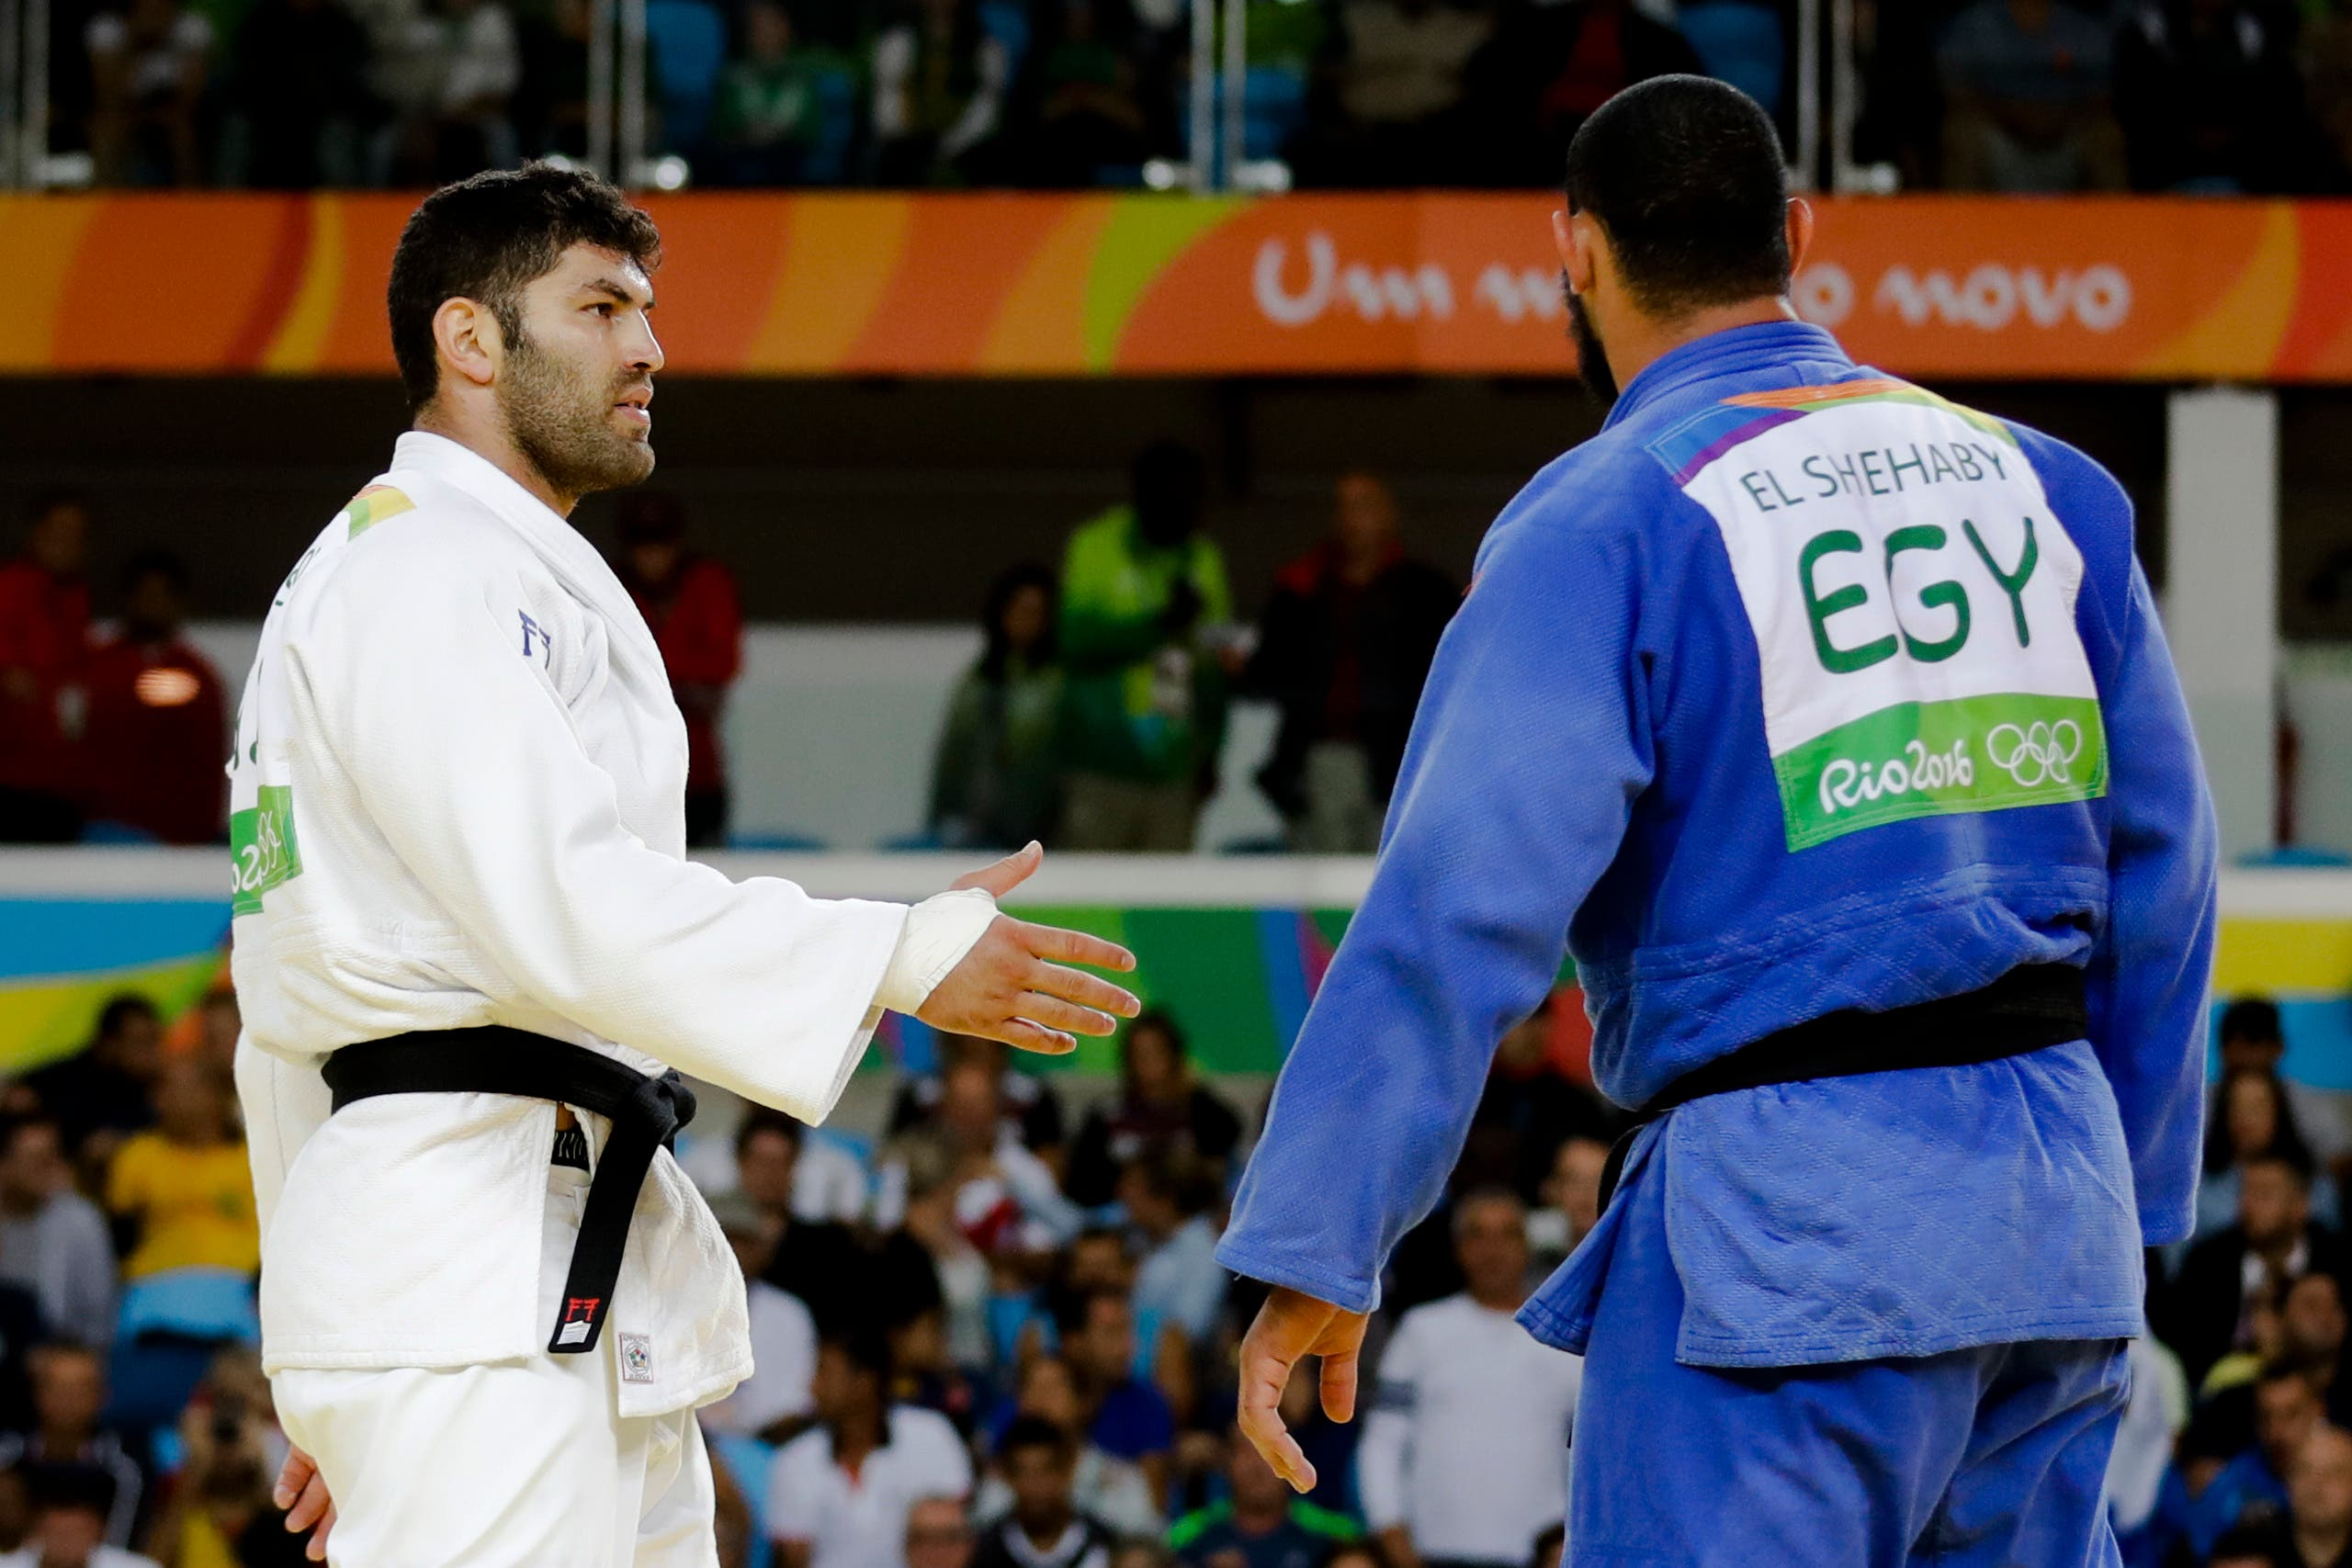 Egypt's Islam El Shehaby, blue, declines to shake hands with Israel's Or Sasson, white, after losing during the men's over 100-kg judo competition at the 2016 Summer Olympics in Rio de Janeiro, Brazil, Friday, Aug. 12, 2016. (AP